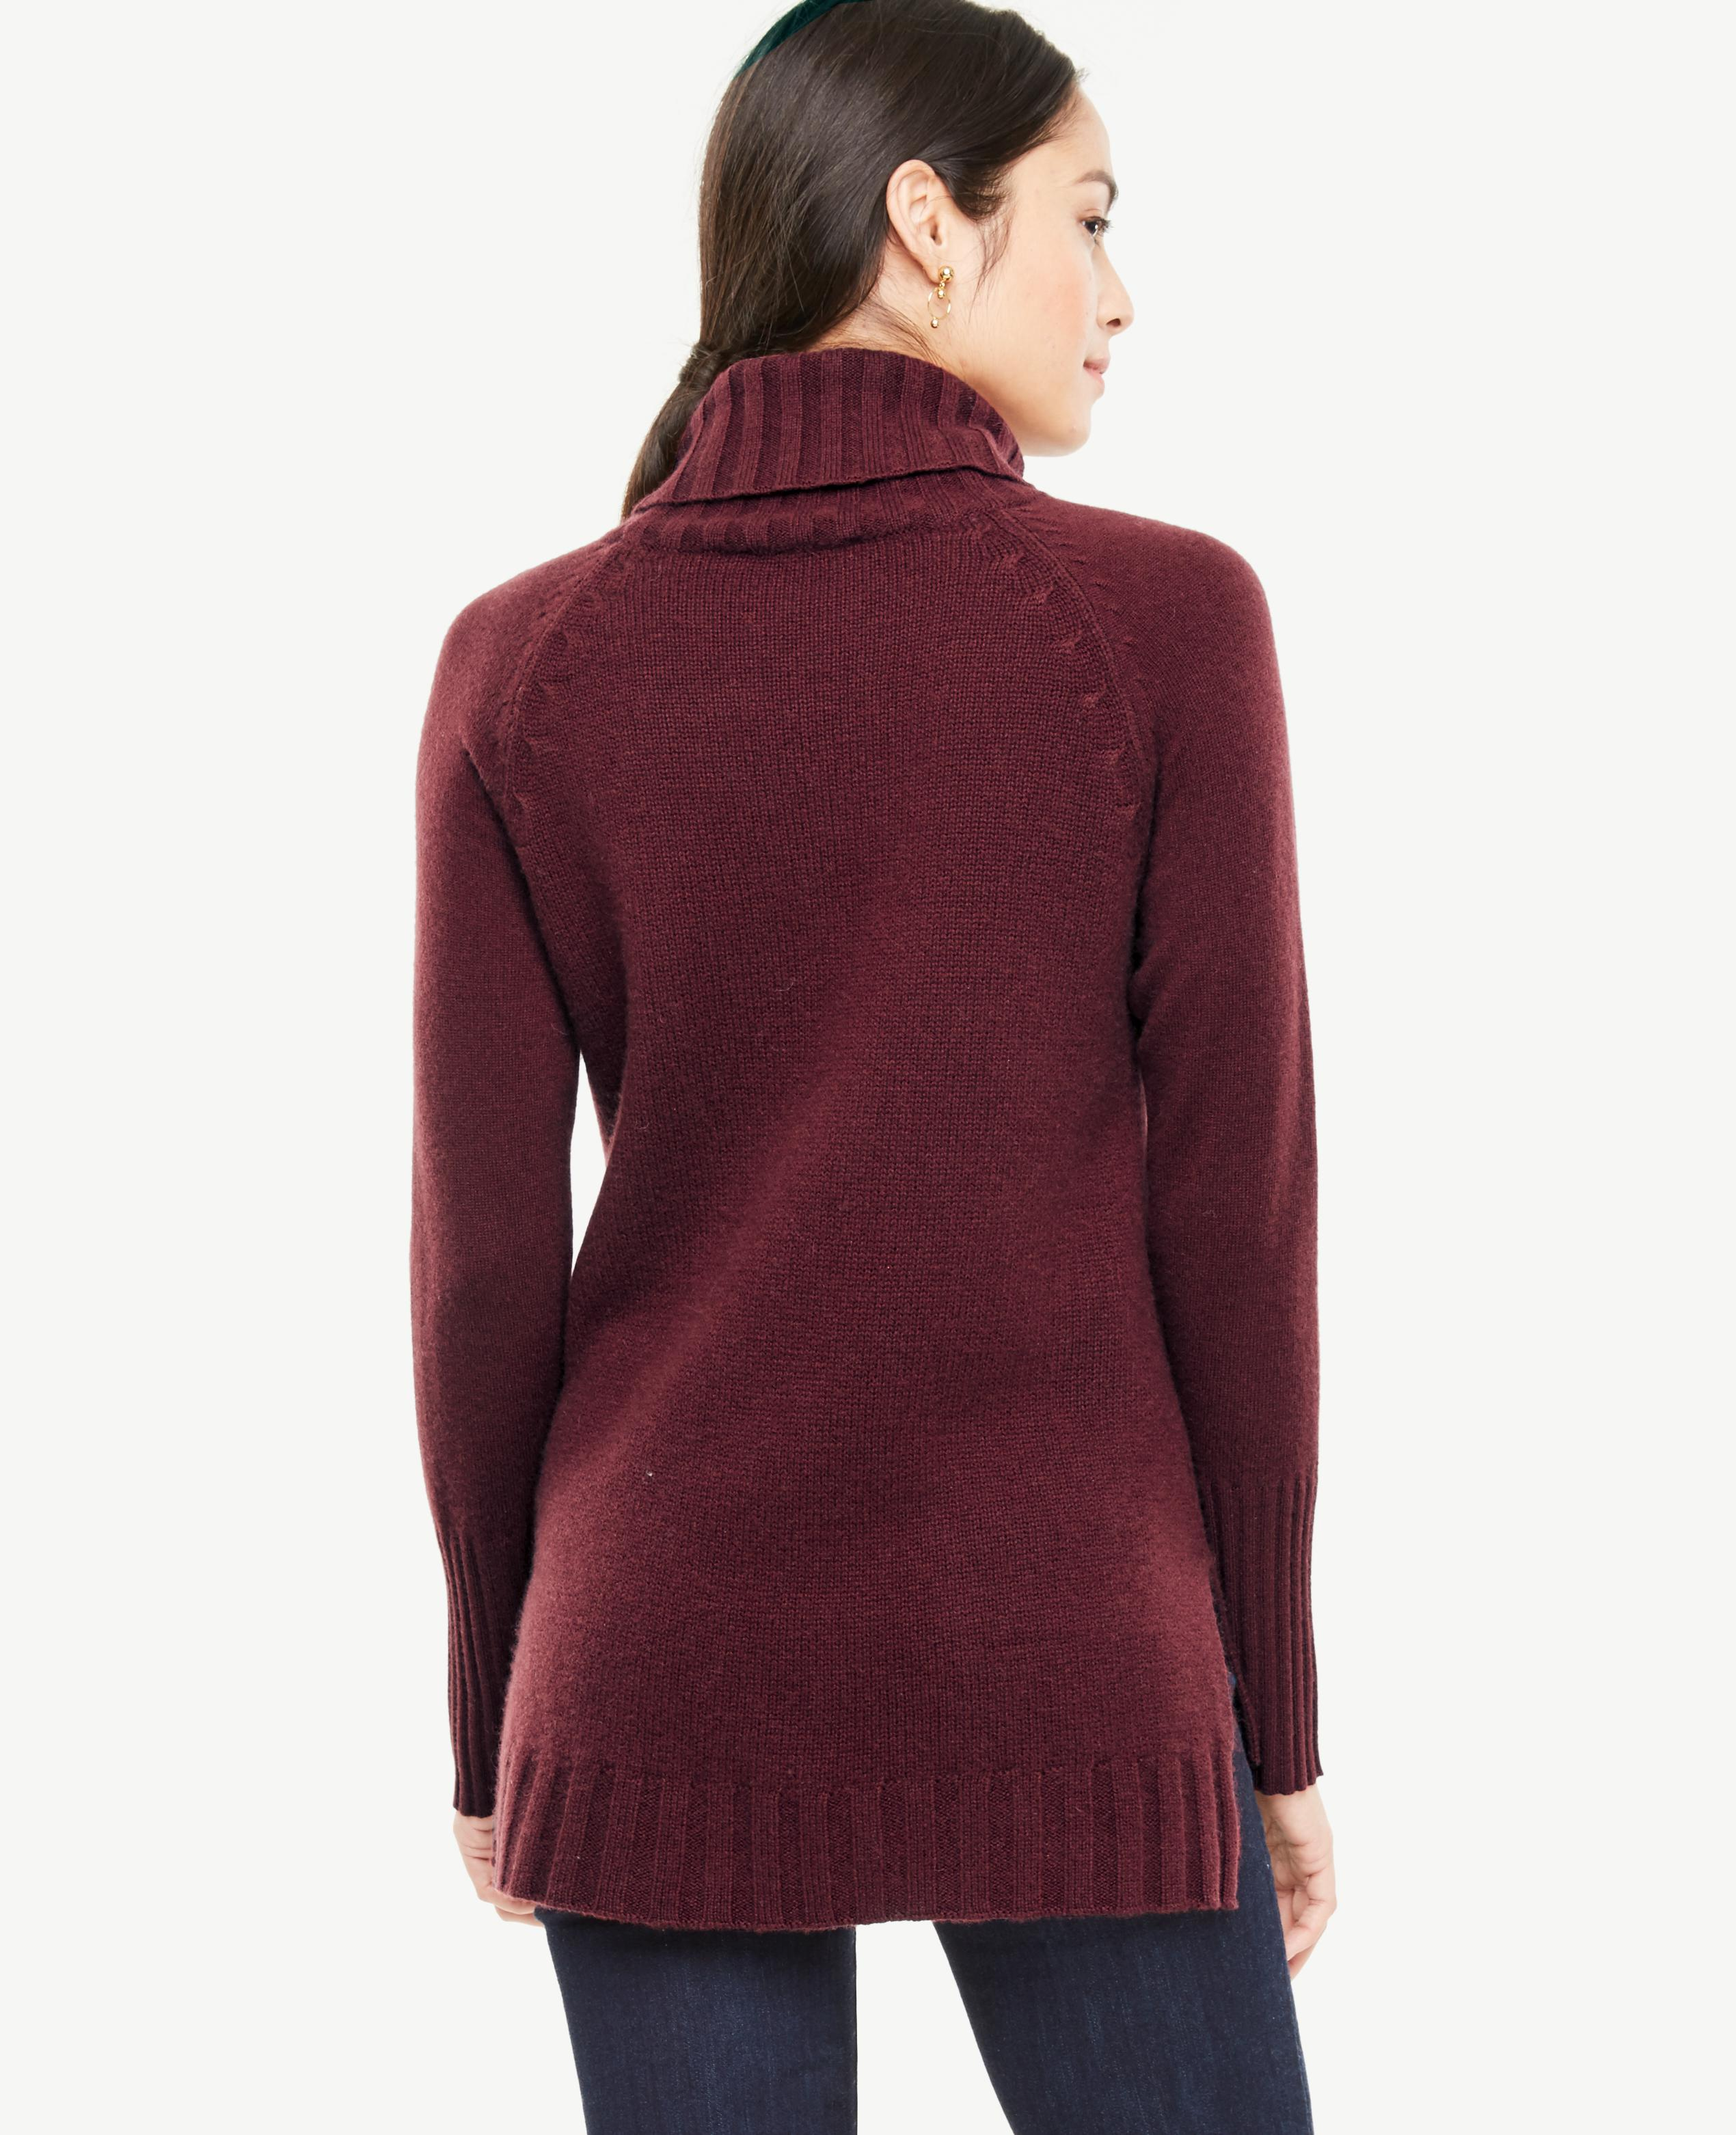 Ann taylor Cashmere Turtleneck Tunic Sweater in Red   Lyst